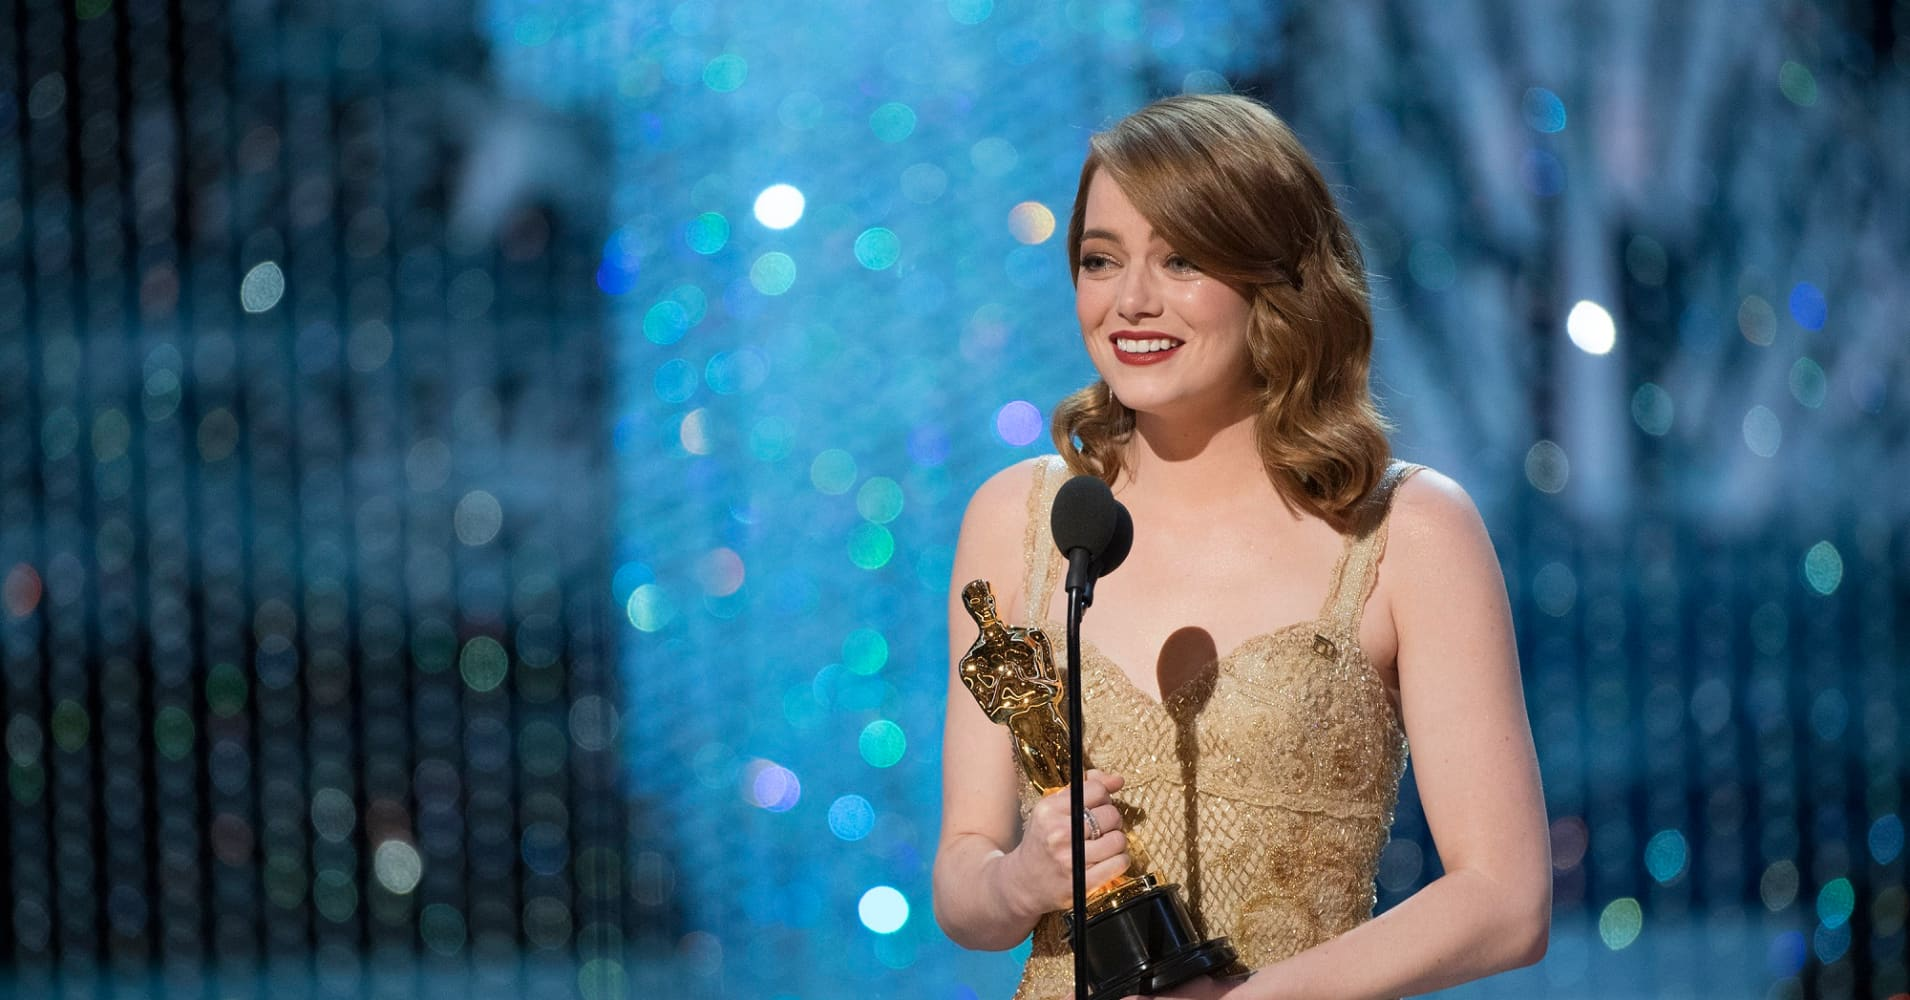 The gender pay gap exists even among A-list and Oscar-nominated stars in Hollywood.